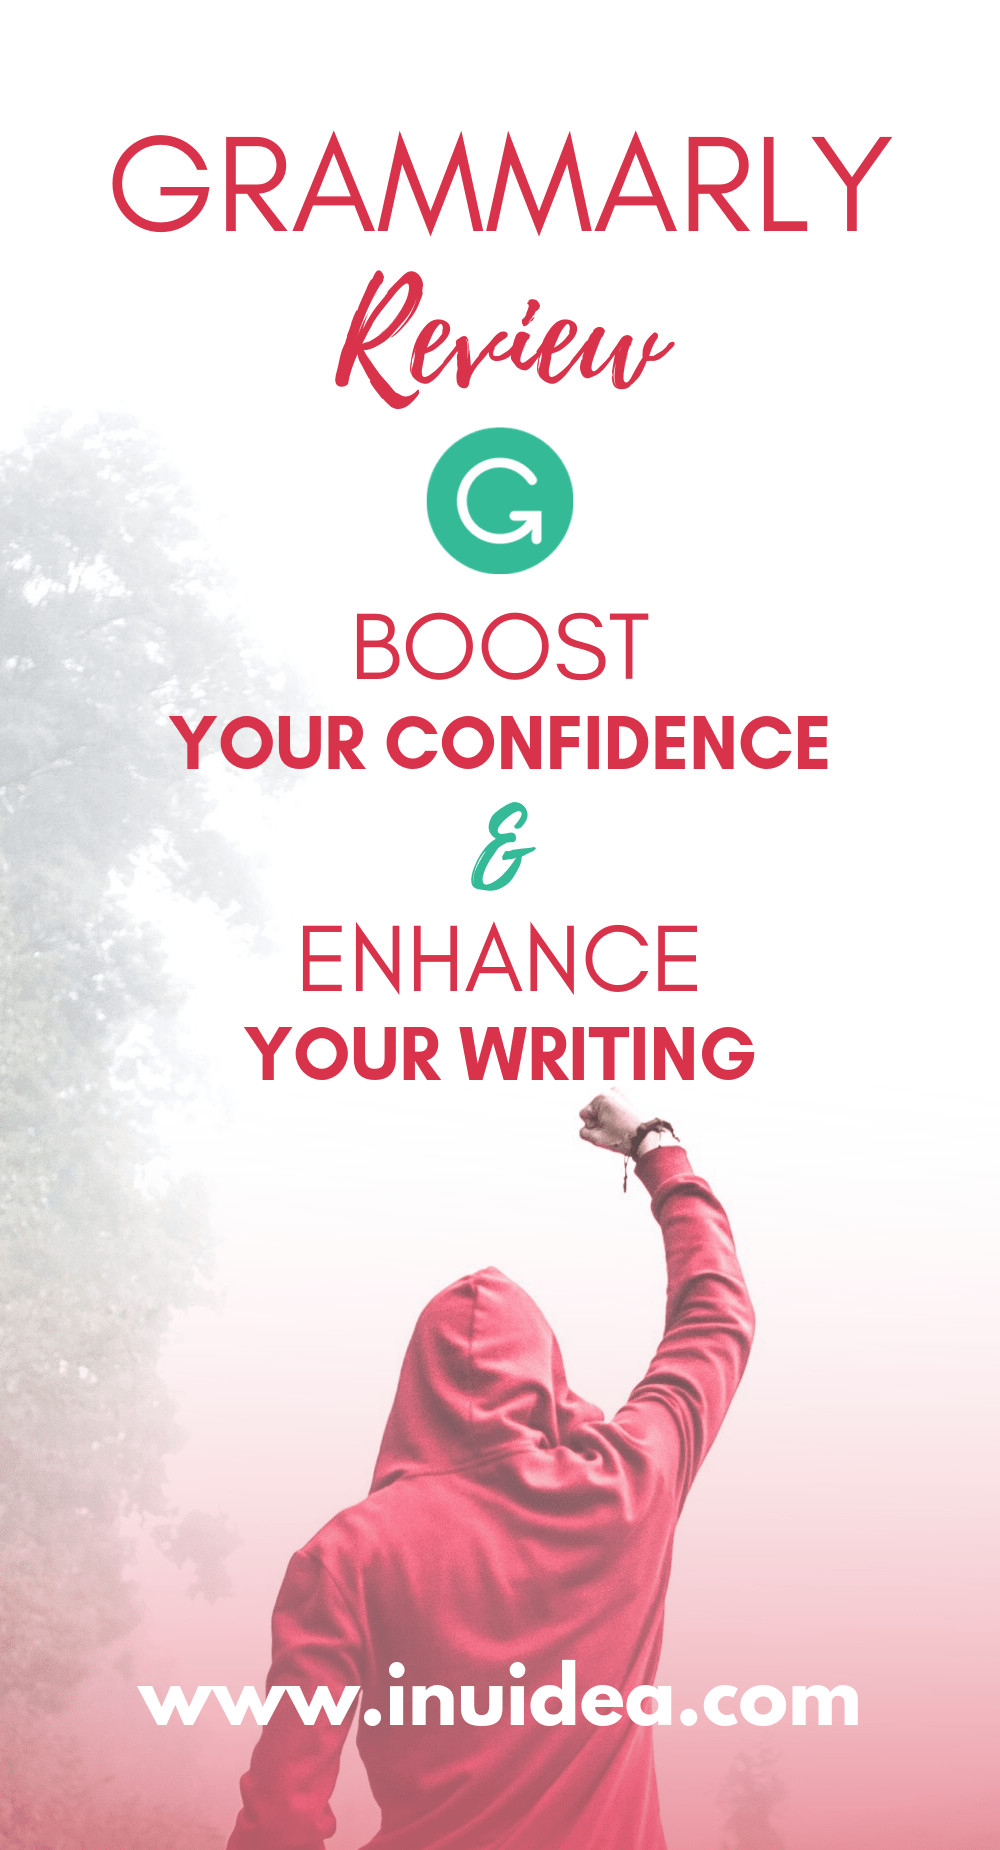 Payment Plan Grammarly Proofreading Software